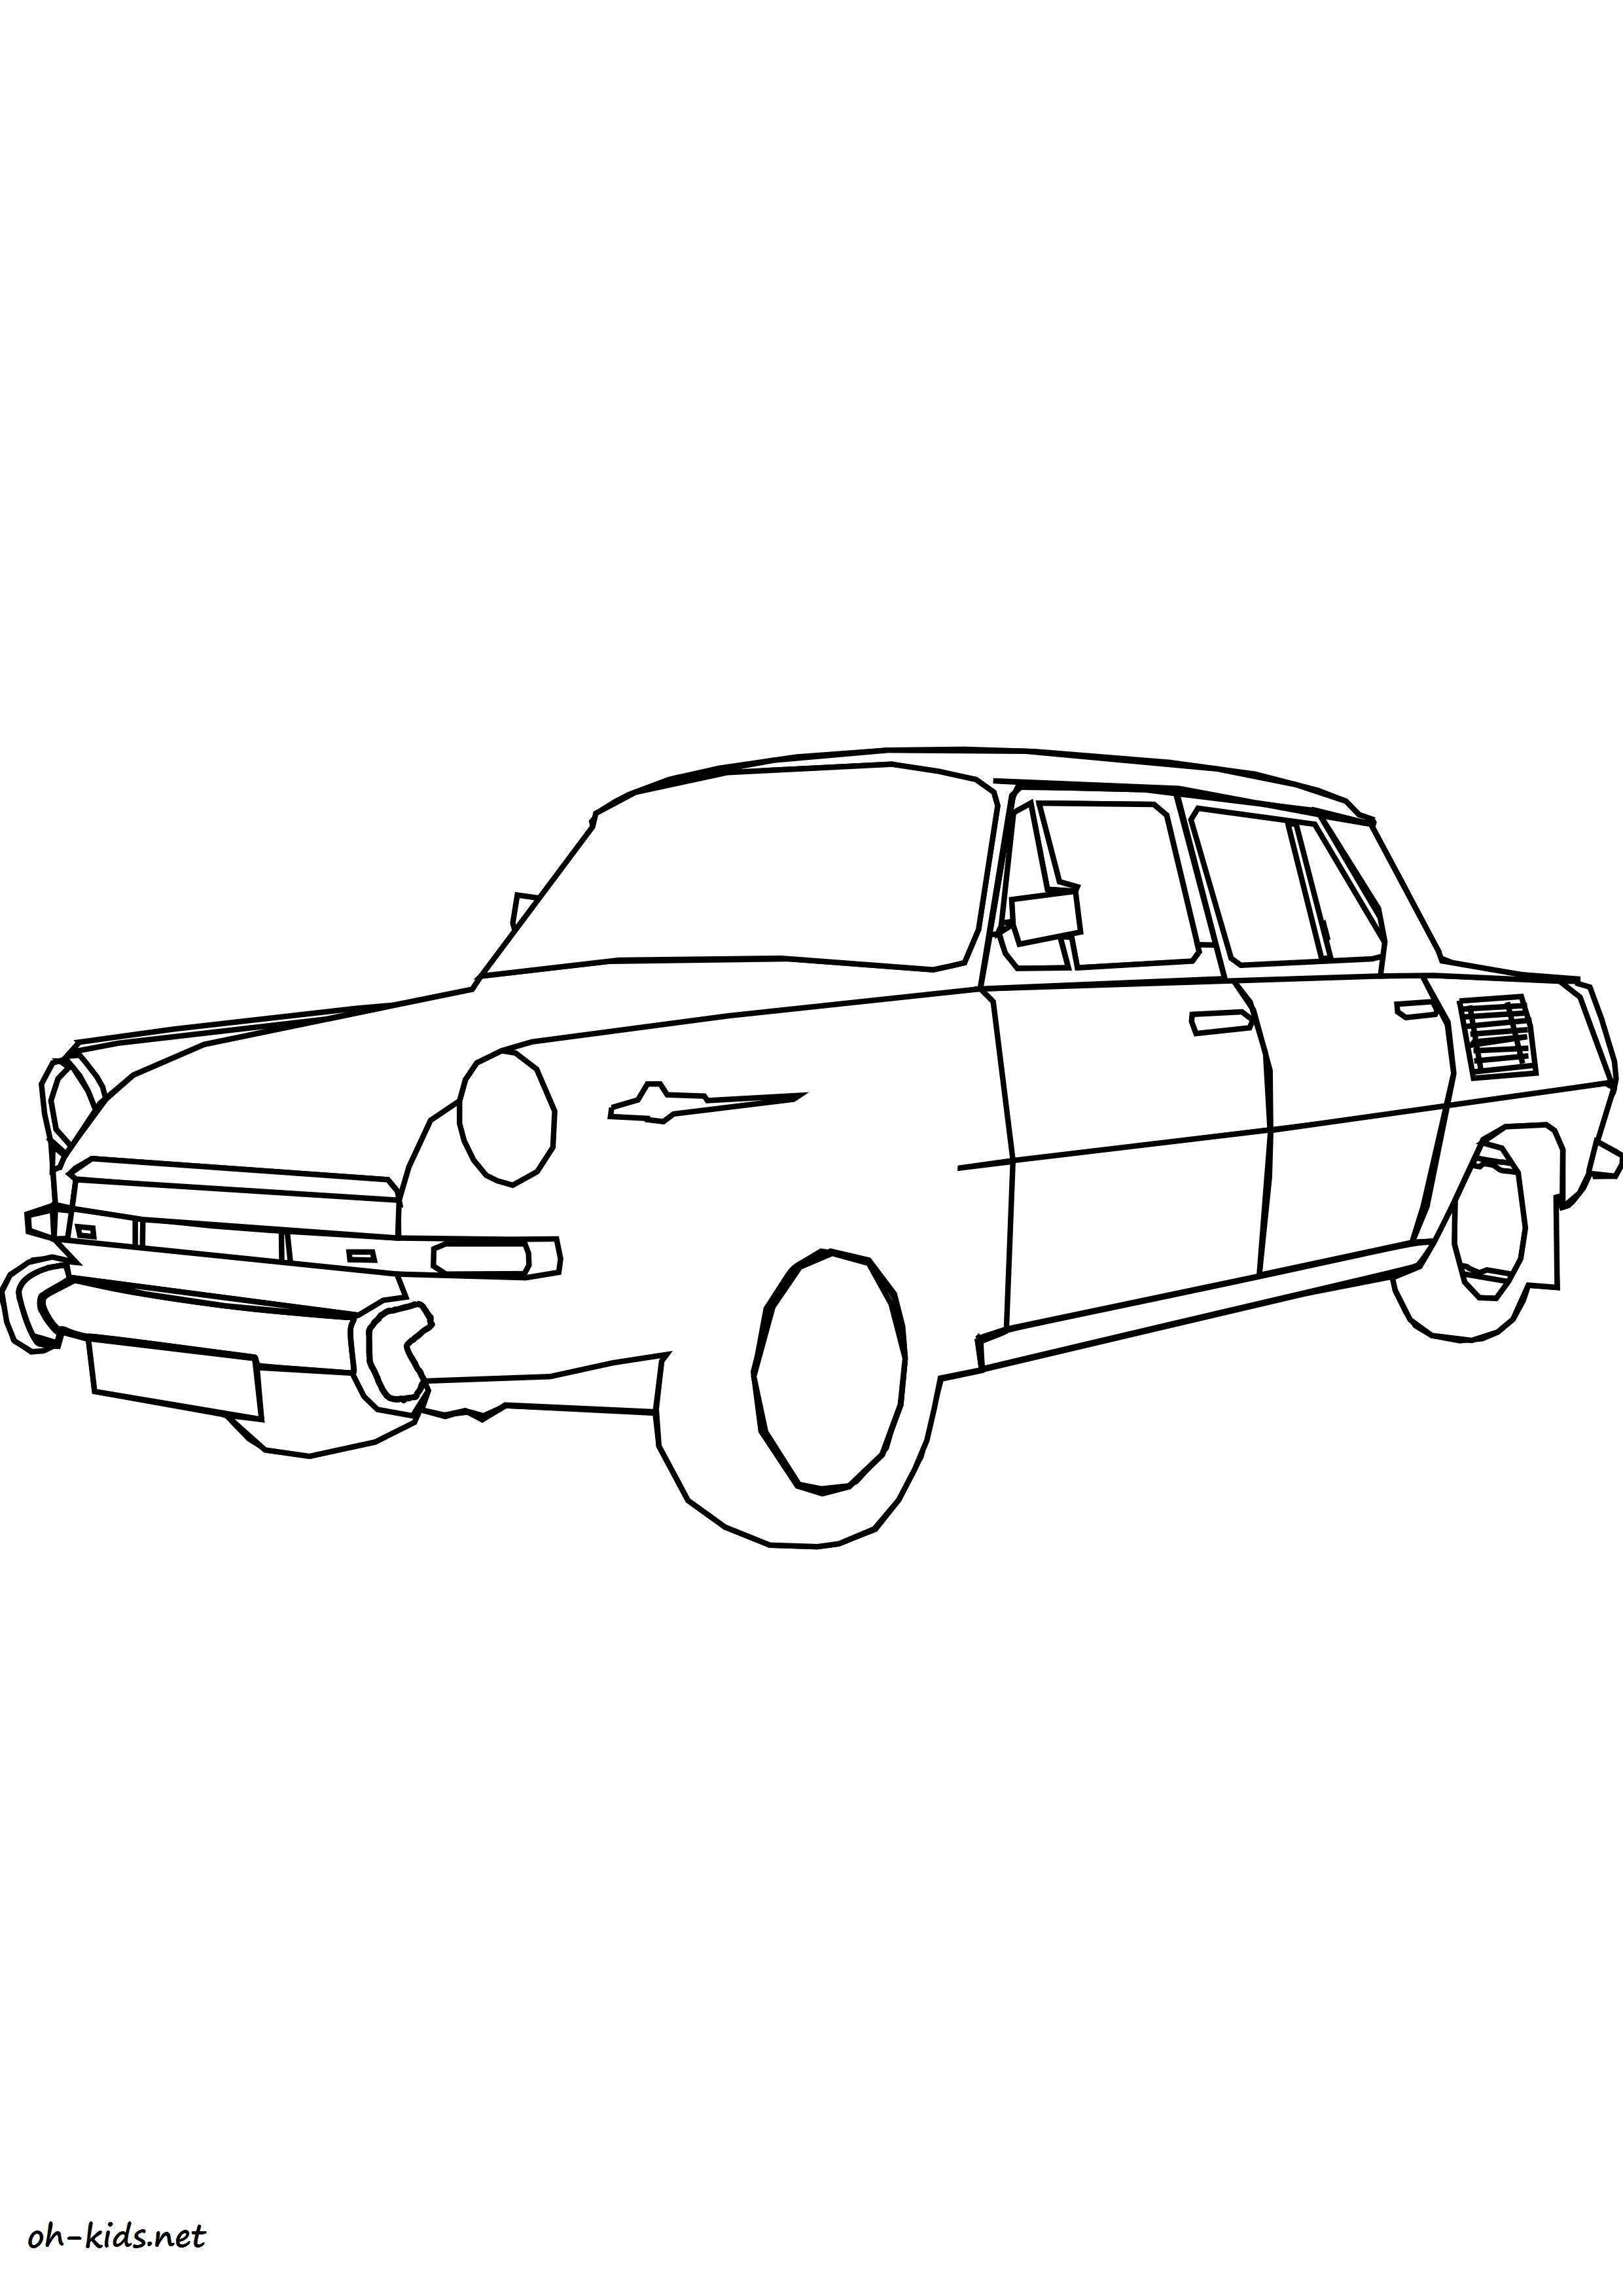 coloriage automobile - Dessin #1427